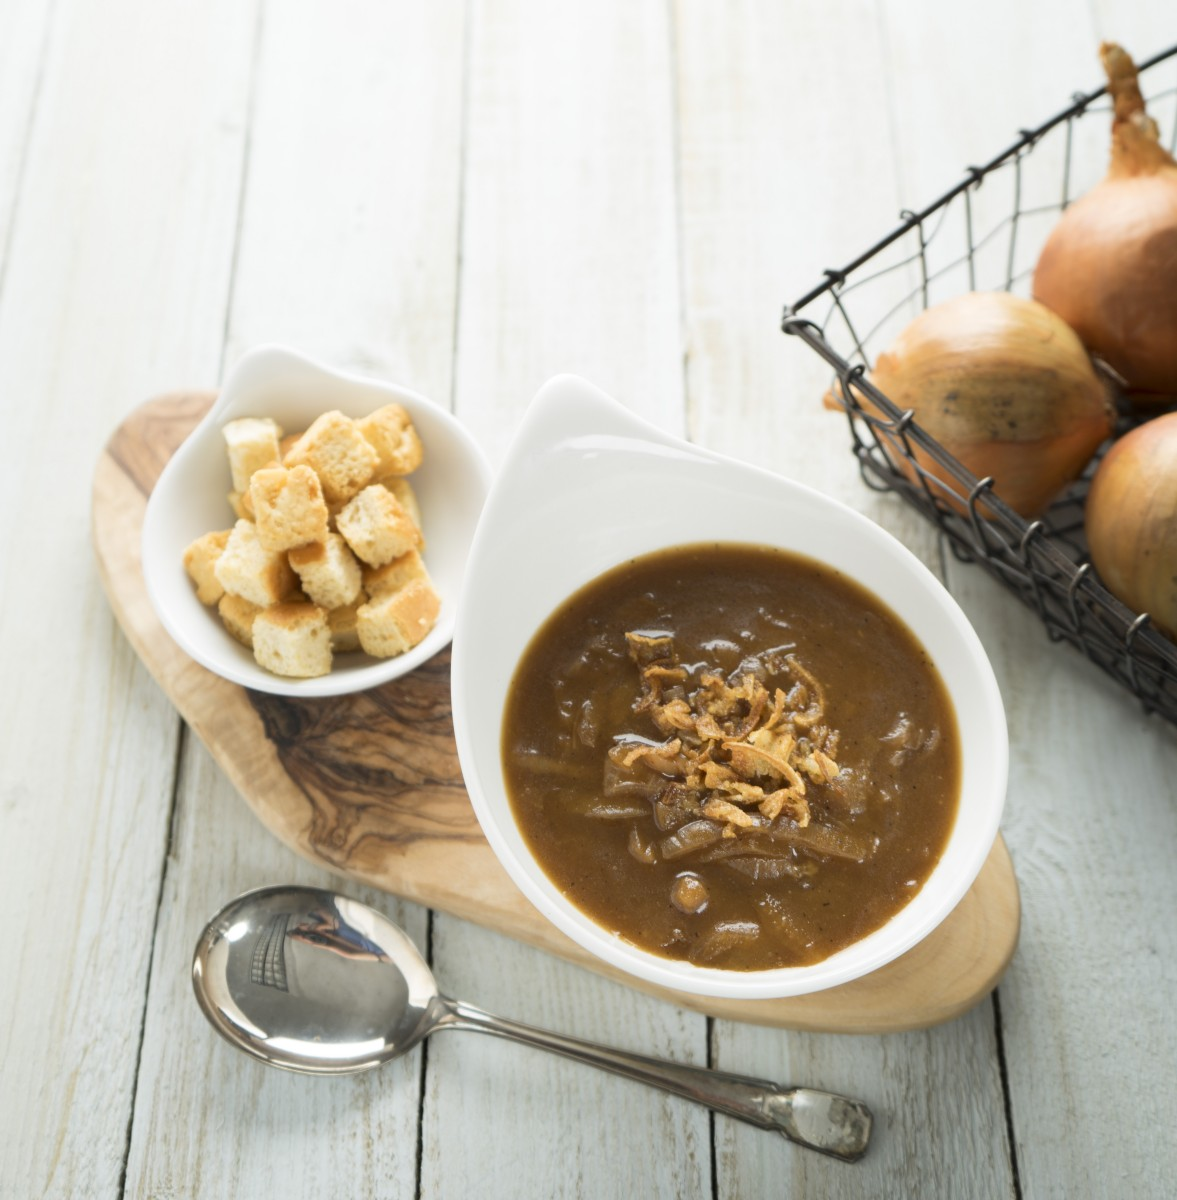 New French Onion Soup Scoops Prestigious Q Award